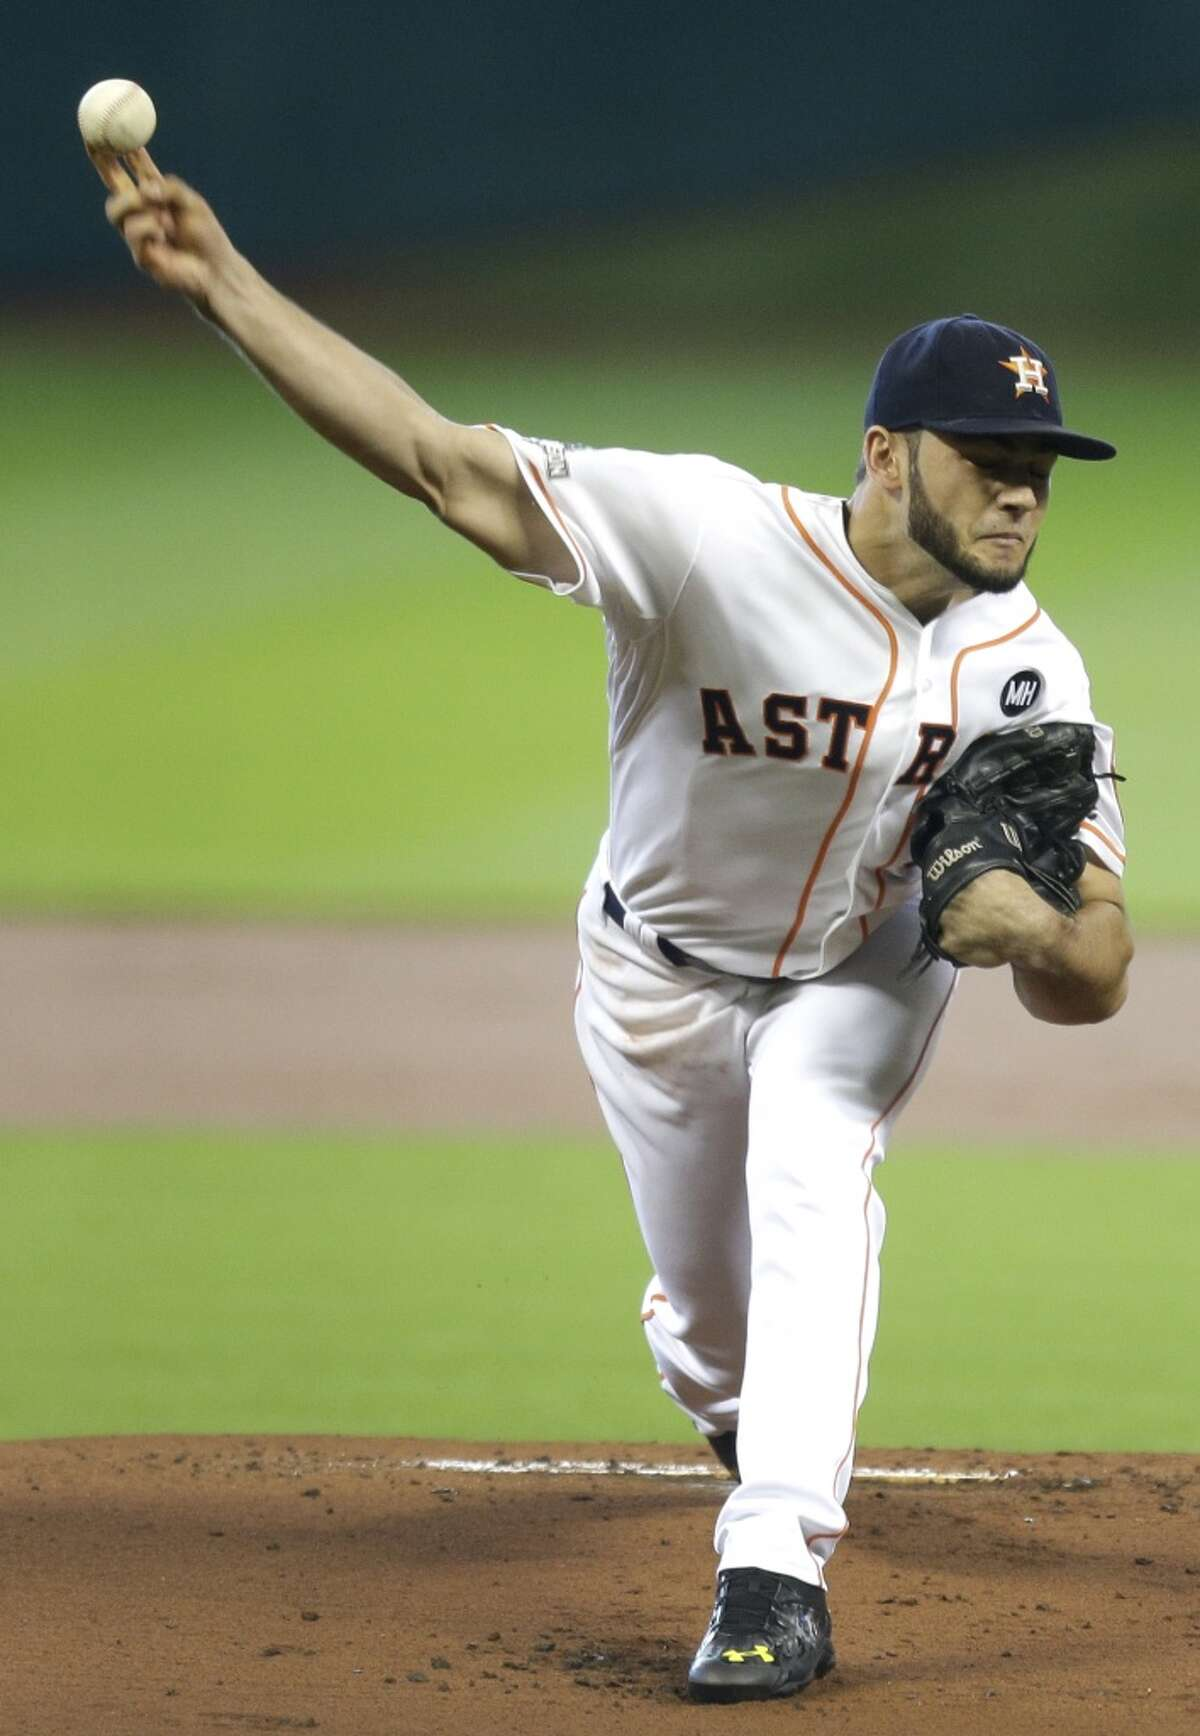 Houston Astros starting pitcher Lance McCullers (43) pitches against the Kansas City Royals during the first inning of Game 4 of the American League Division Series at Minute Maid Park on Monday, Oct. 12, 2015, in Houston. ( Brett Coomer / Houston Chronicle )